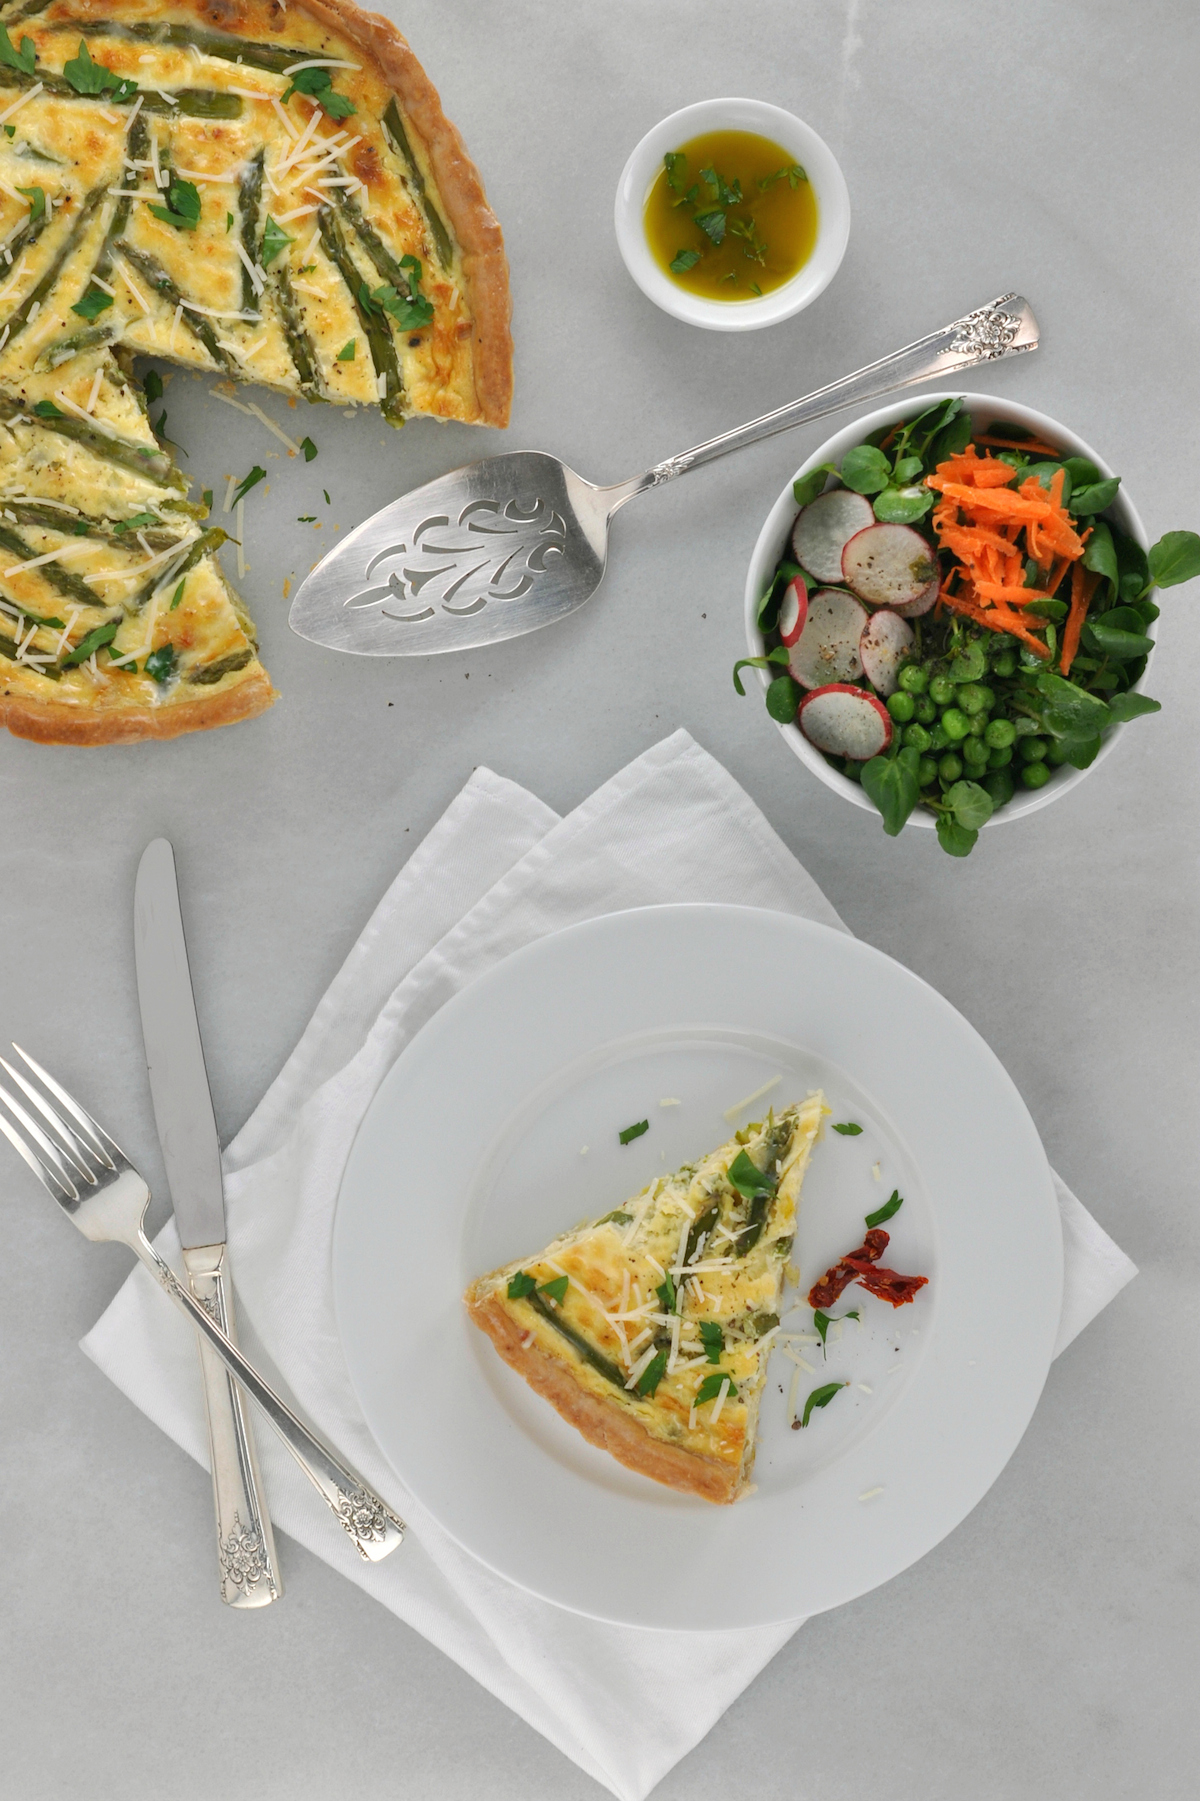 Asparagus, Leek, and Sun-Dried Tomato Quiche